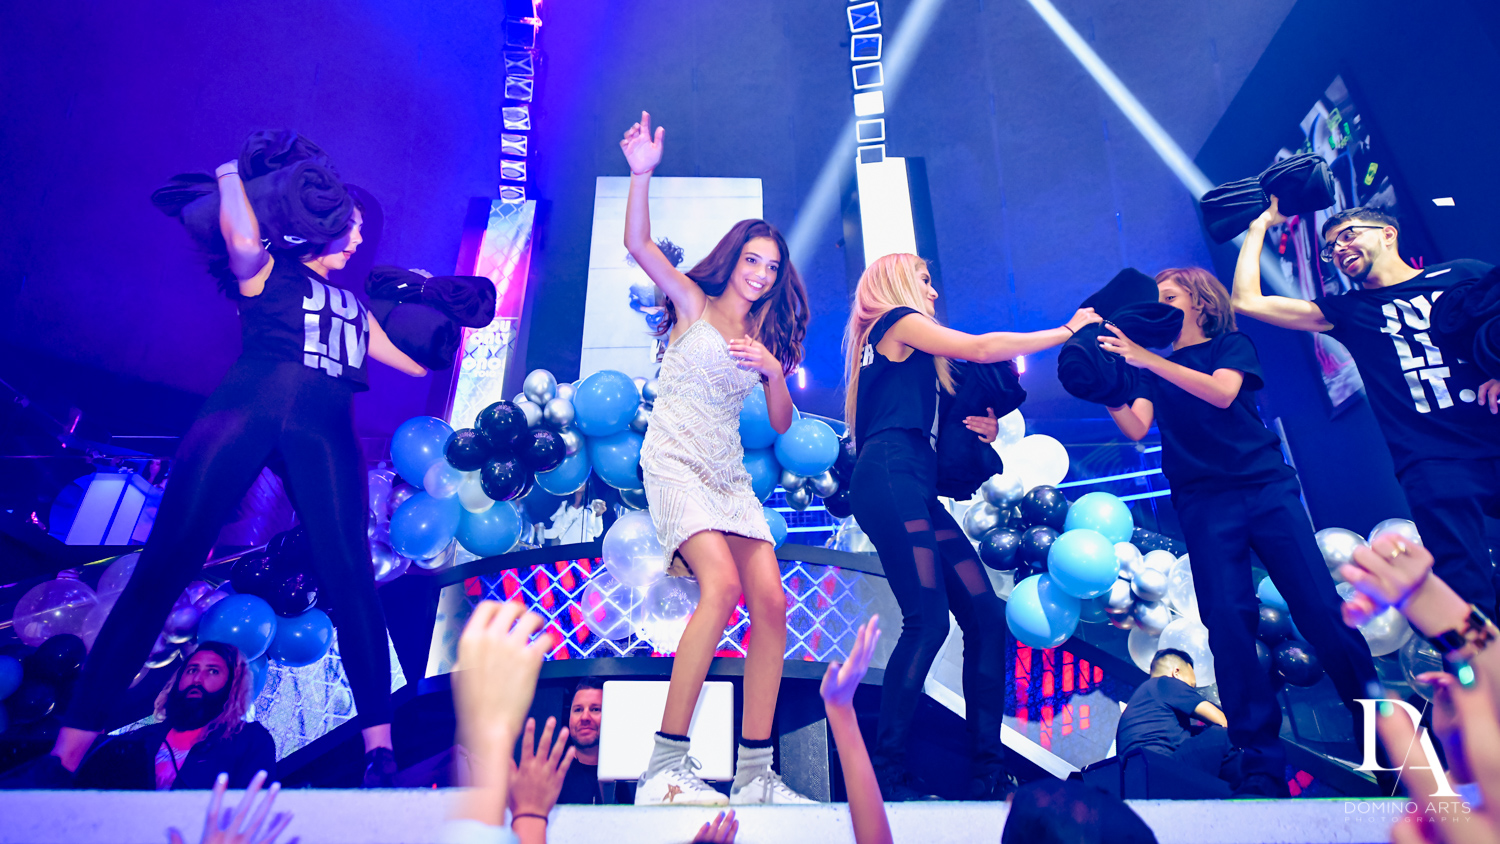 dancing at party at Nightclub Bat Mitzvah at LIV in Fontainebleau Miami by Domino Arts Photography